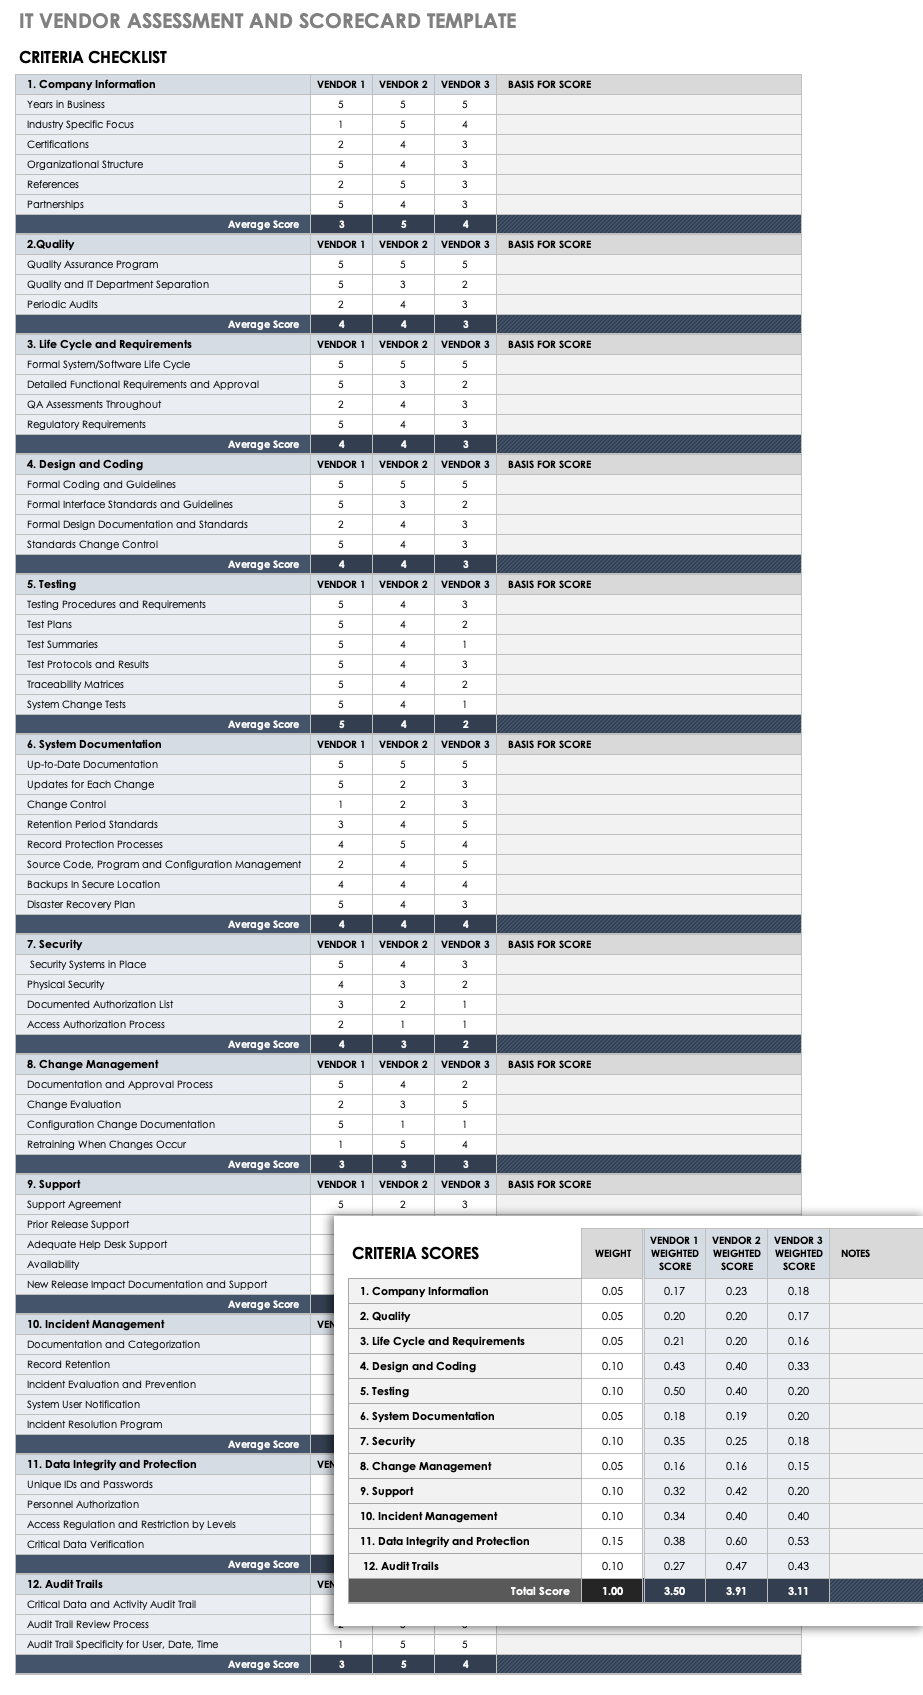 Vendor Scorecard Template Xls from www.smartsheet.com